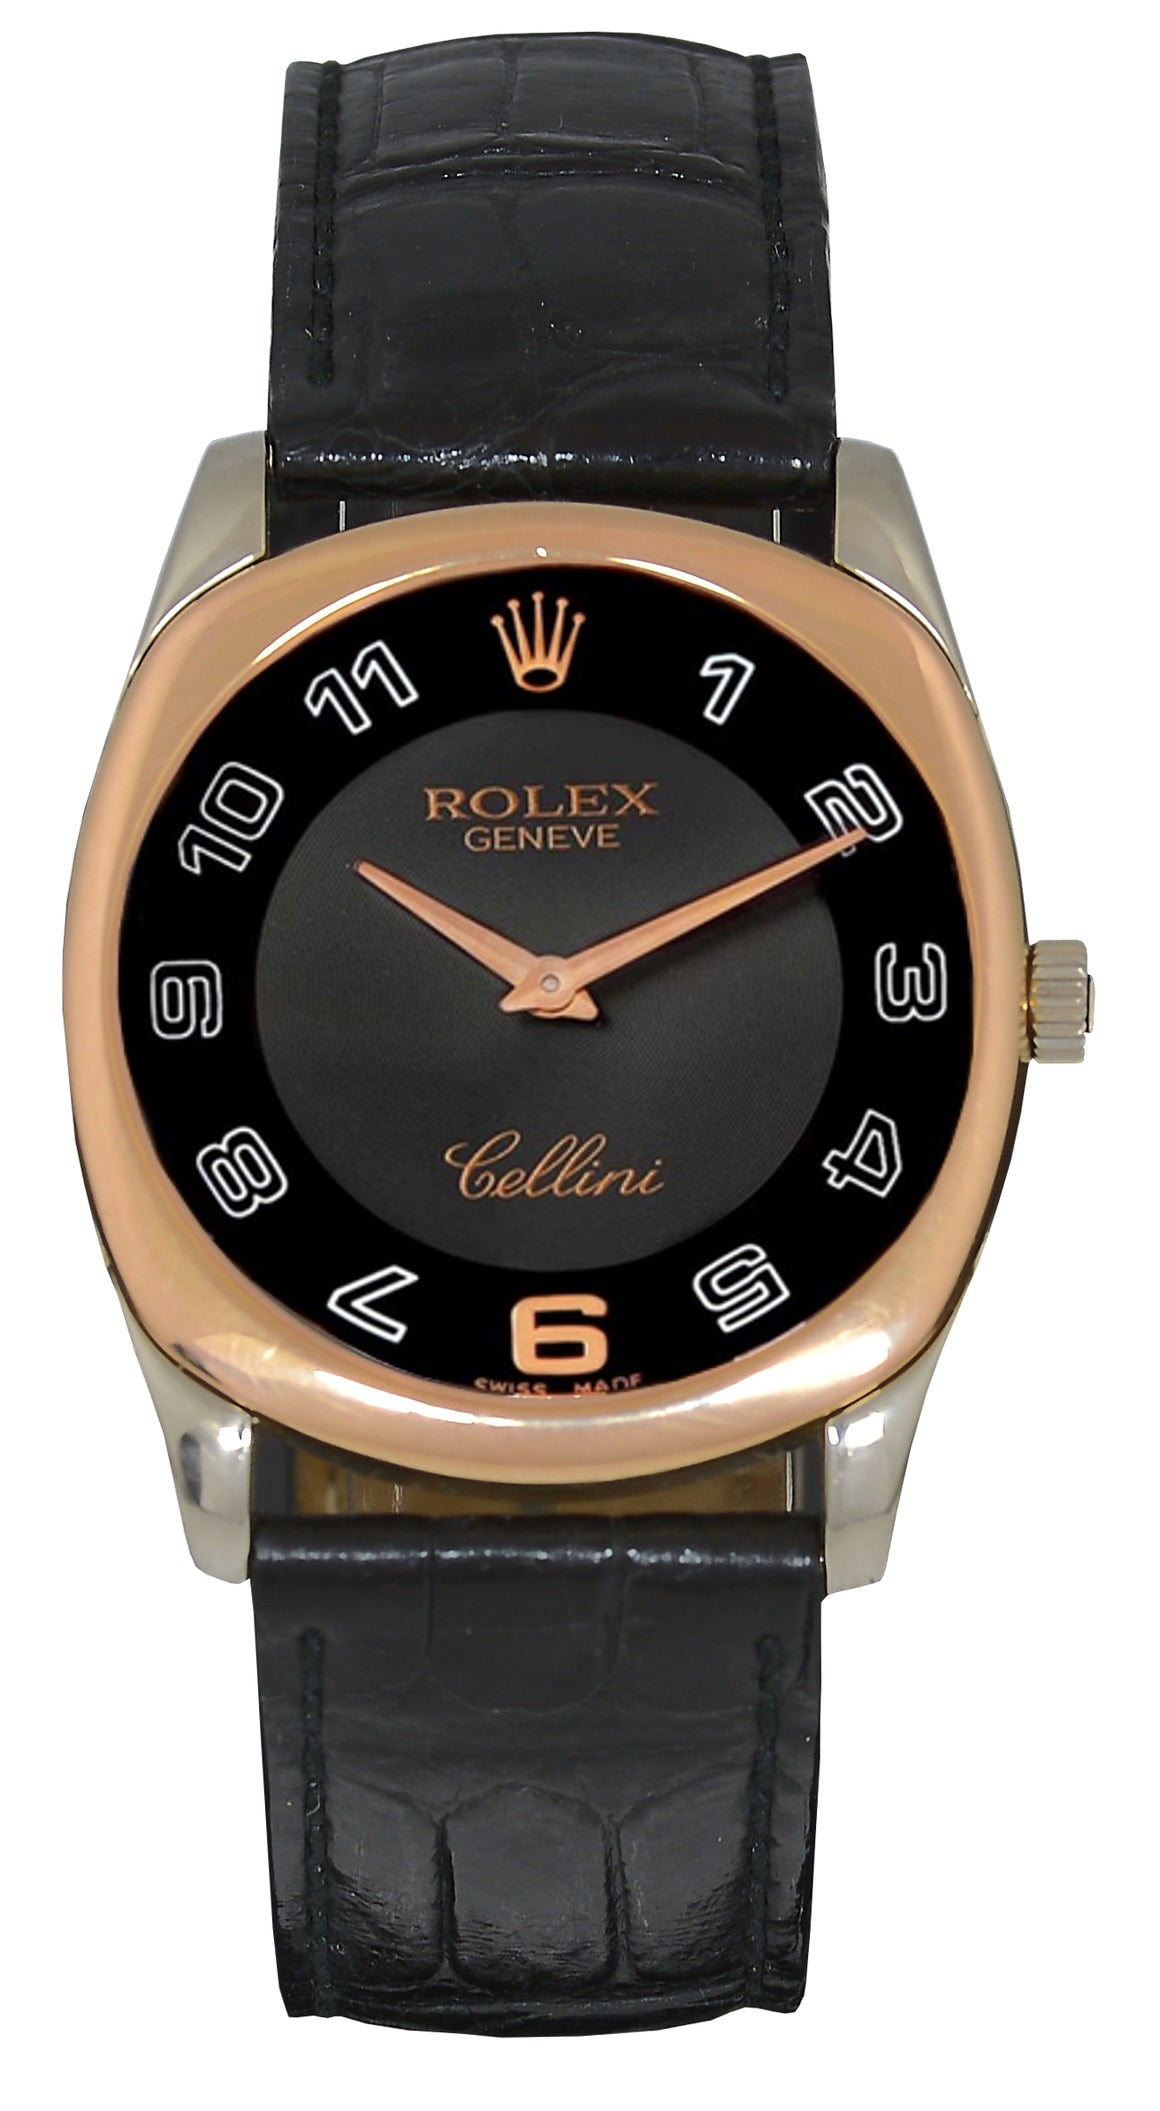 Rolex Cellini Danao Watch 18k White & Rose Gold, Ref: 4233 Papers